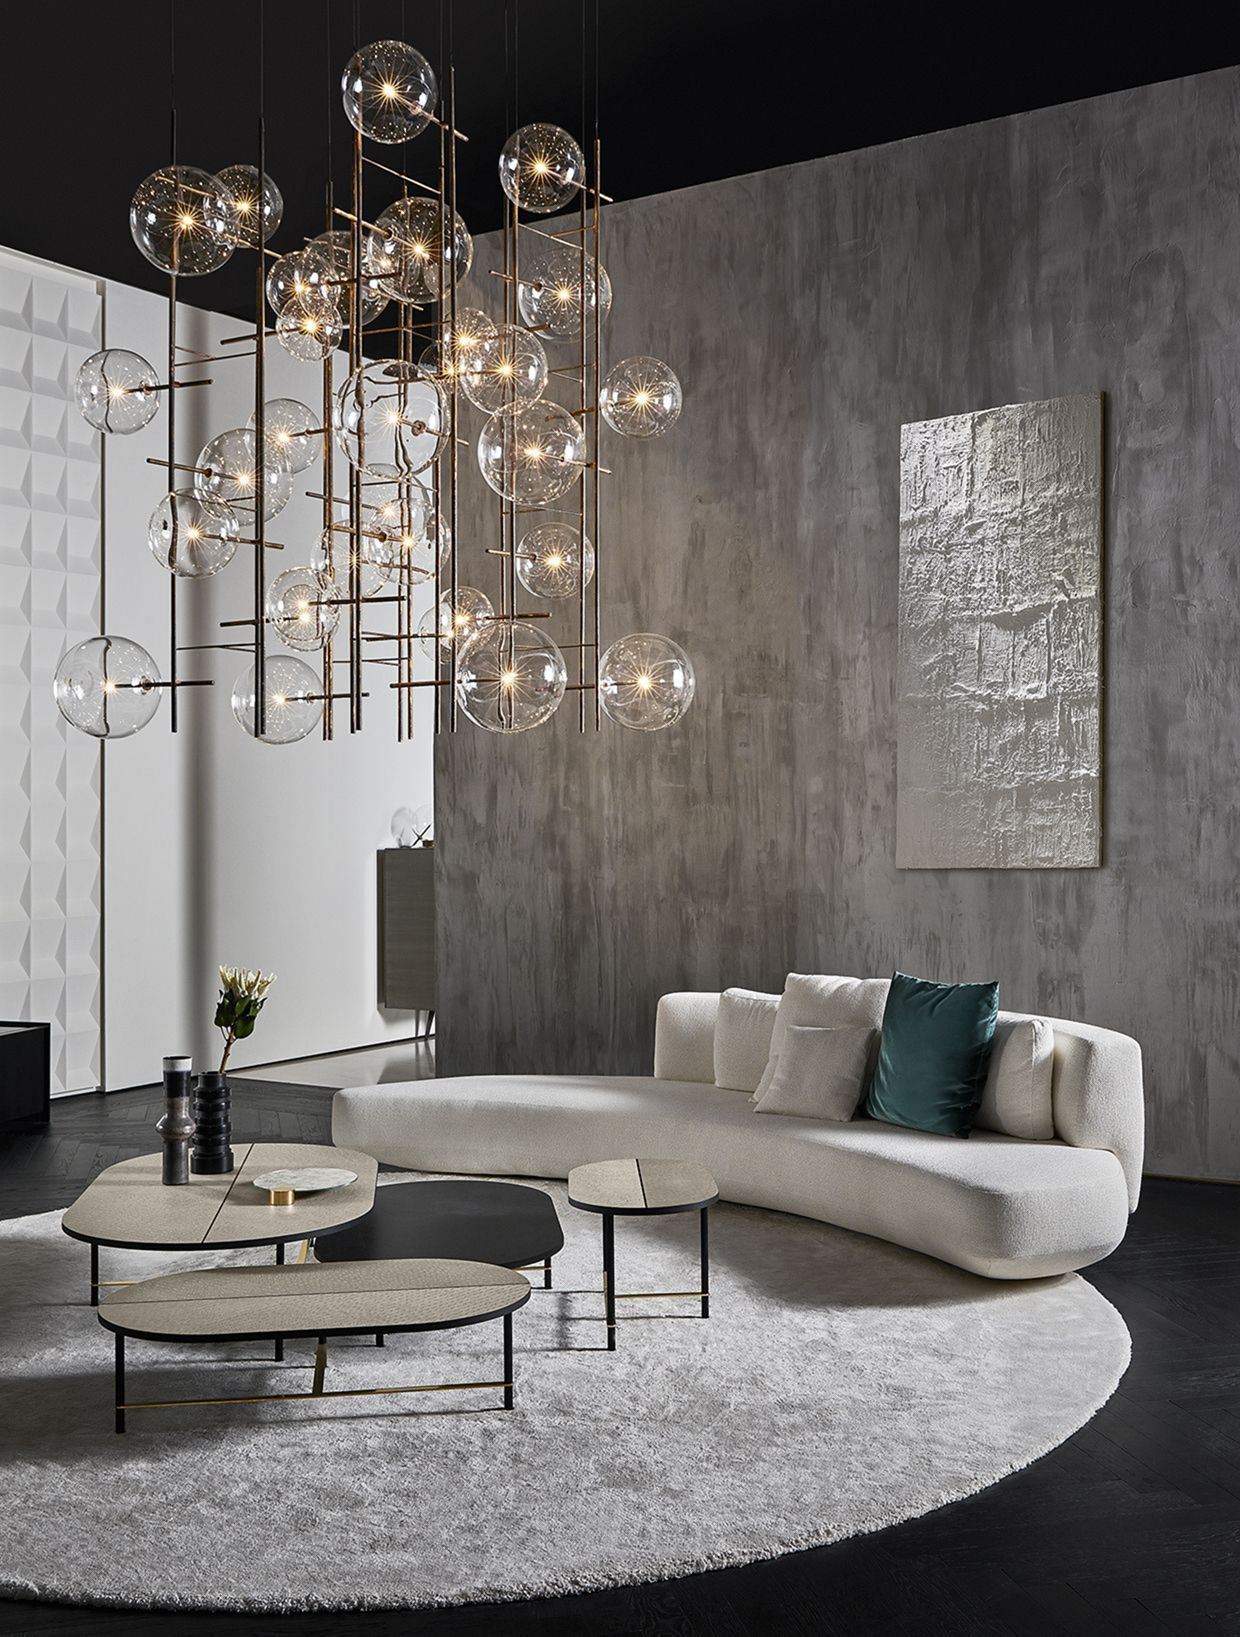 25 Elegant Minimalist Living Room Ideas For The Comfort Of You And Your Guests Minimalist